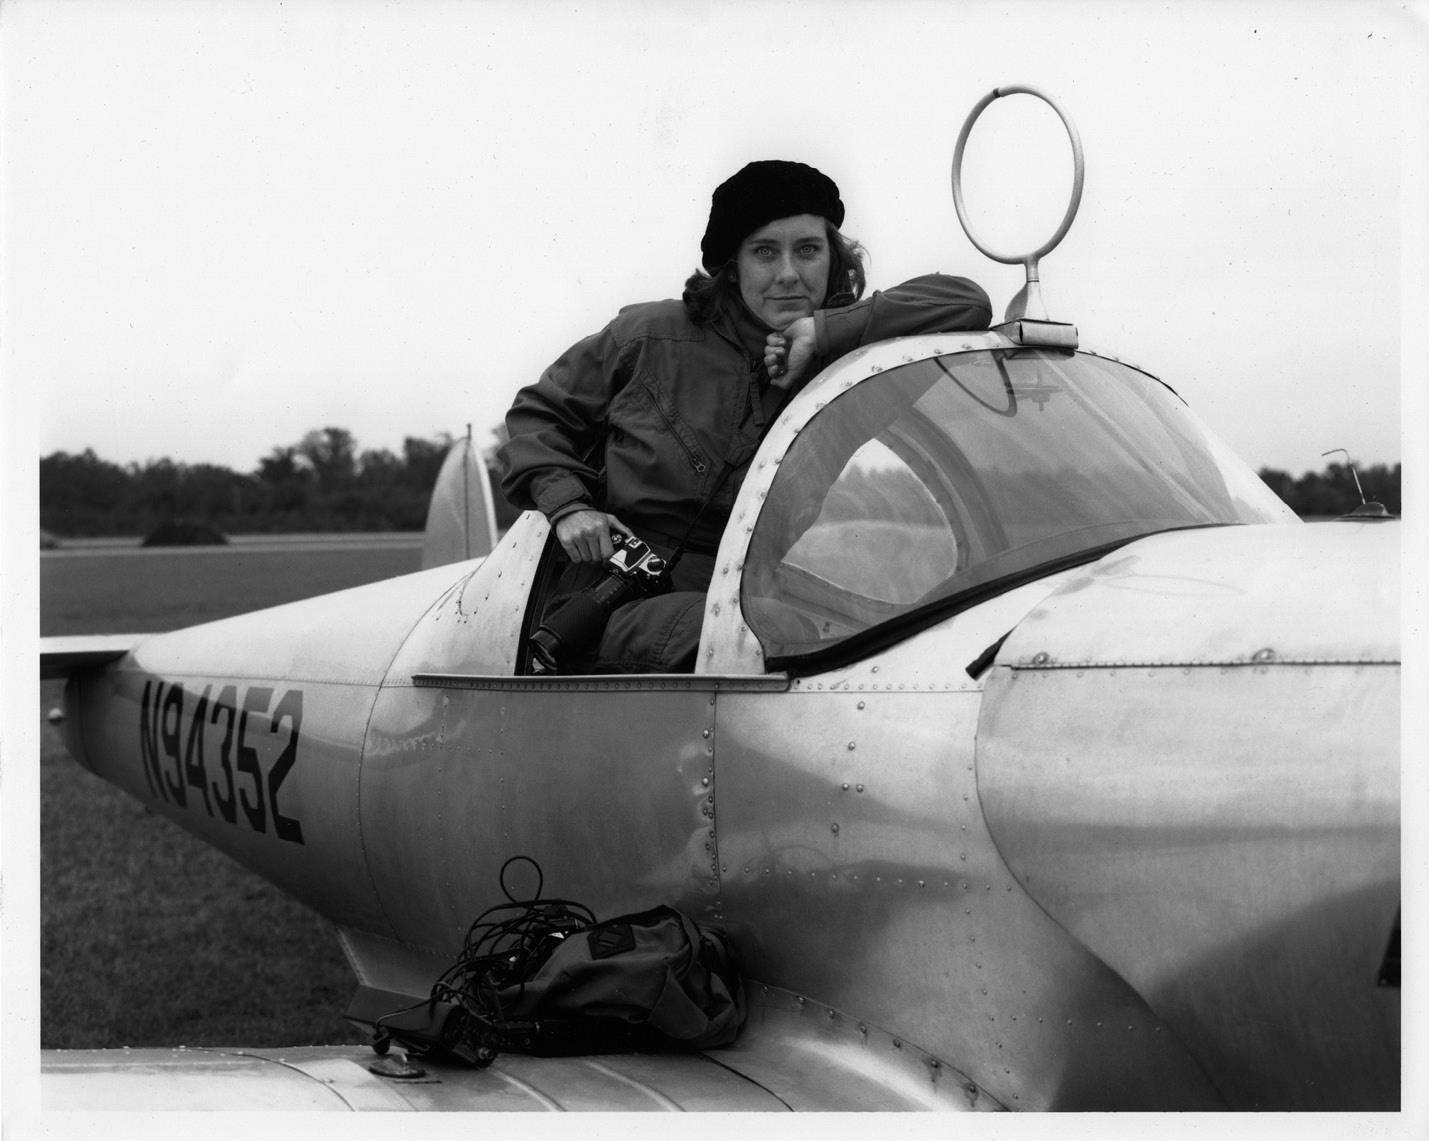 """Undaunted: """"If I don't get into a place I want to go, I go knock on another door,"""" says the fearless Fraser, whose master pilot father took her flying in his 1946 Ercoupe; photograph courtesy of Mary Edna Fraser"""